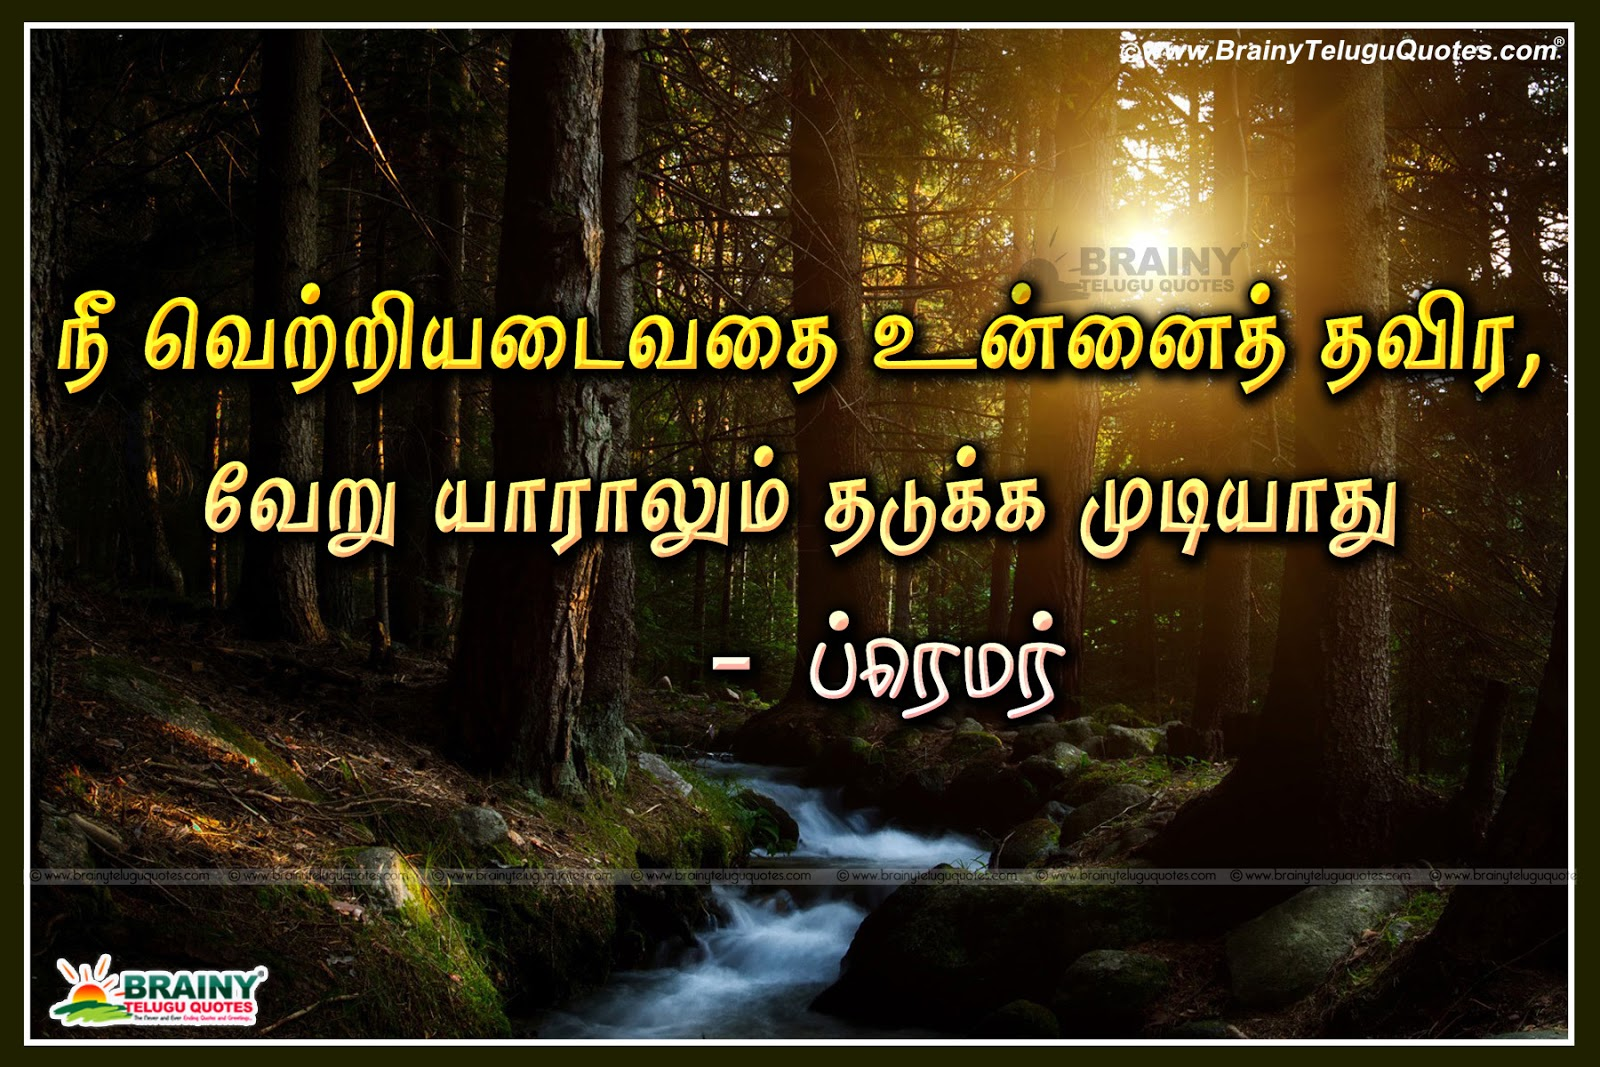 Motivational Quotes About Friendship Best Tamil Friendship Inspirational Quotes And Natpu Kavithaigal